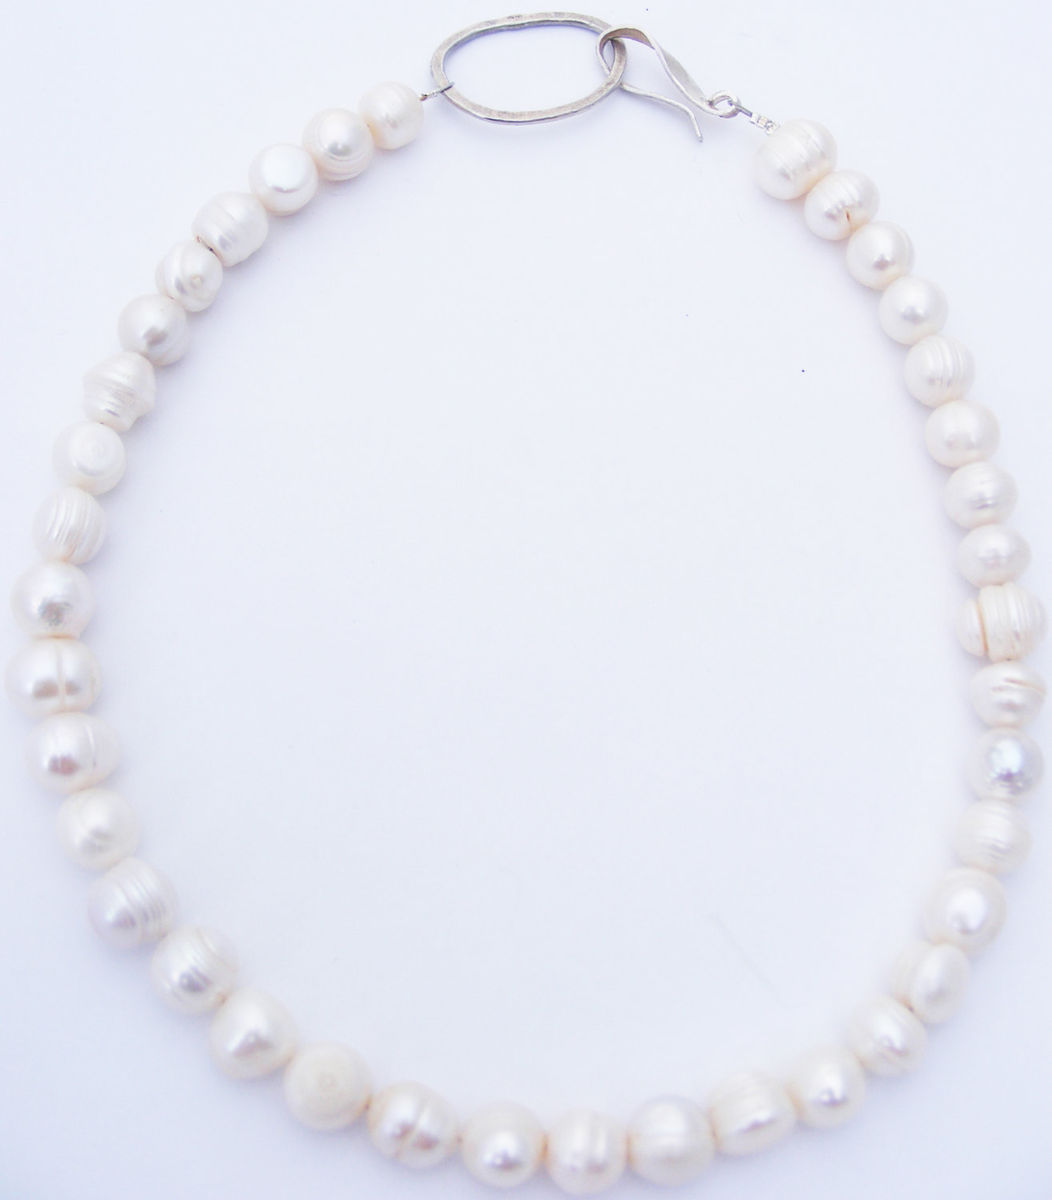 large freshwater pearl necklace - product images  of